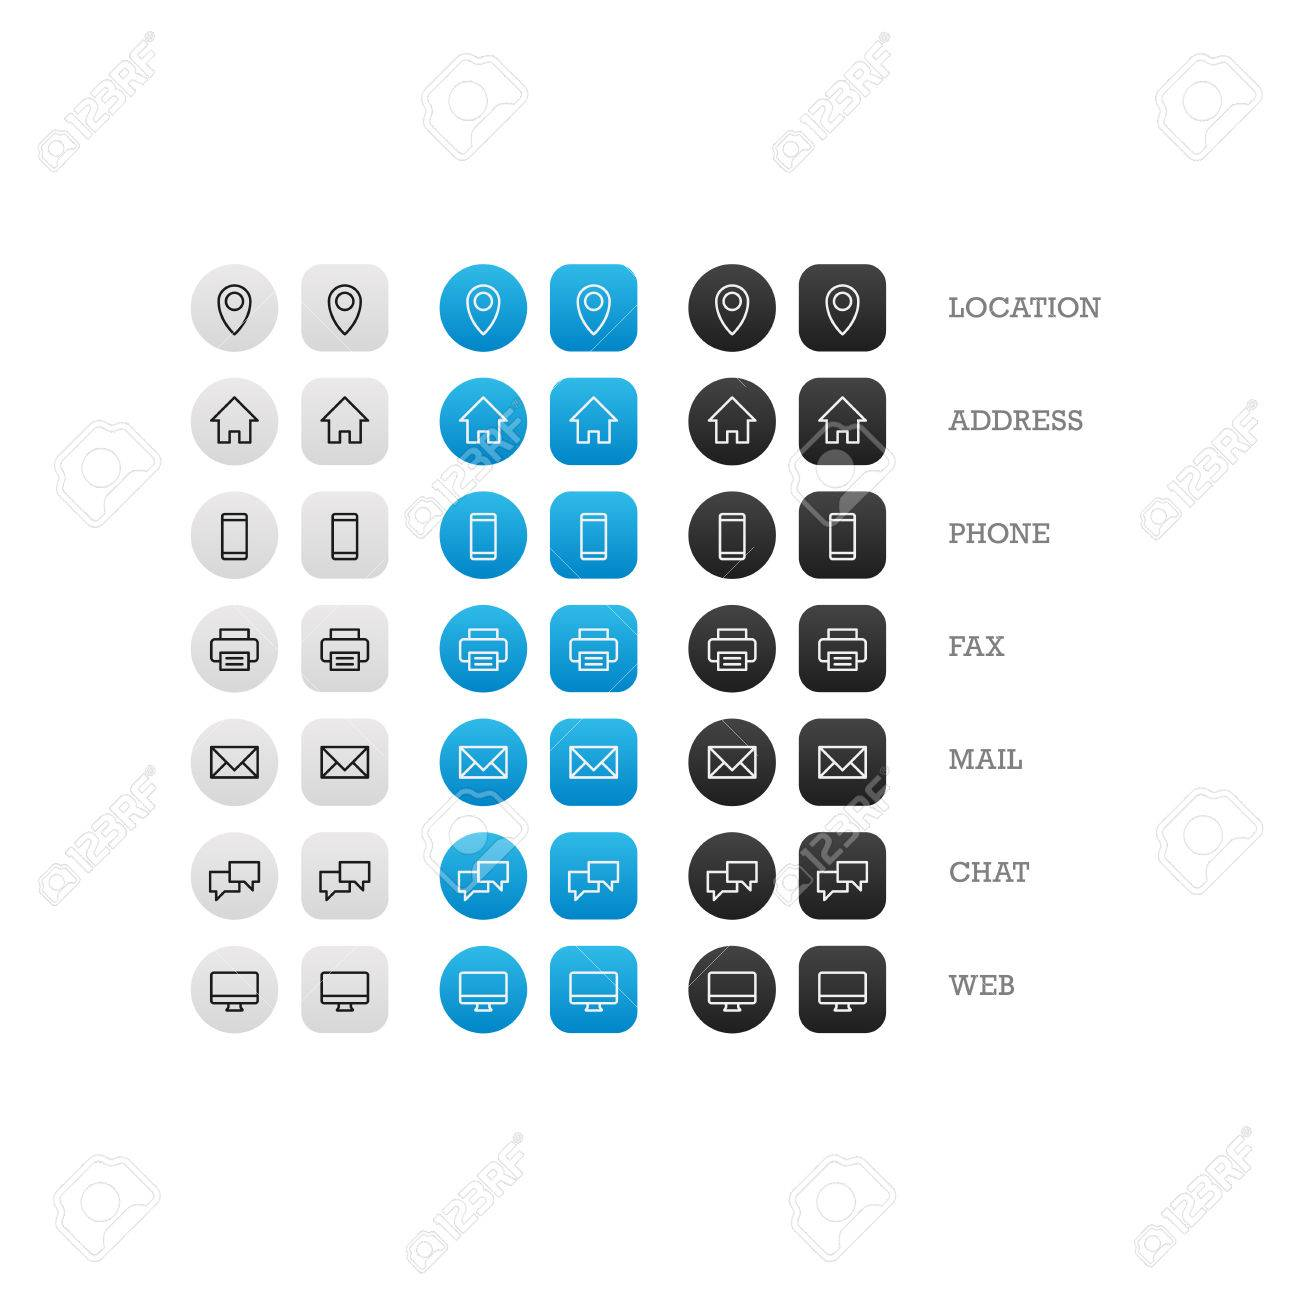 Flat multipurpose business card icon set of web icons for business finance and communication. Vector graphic template. - 40494814